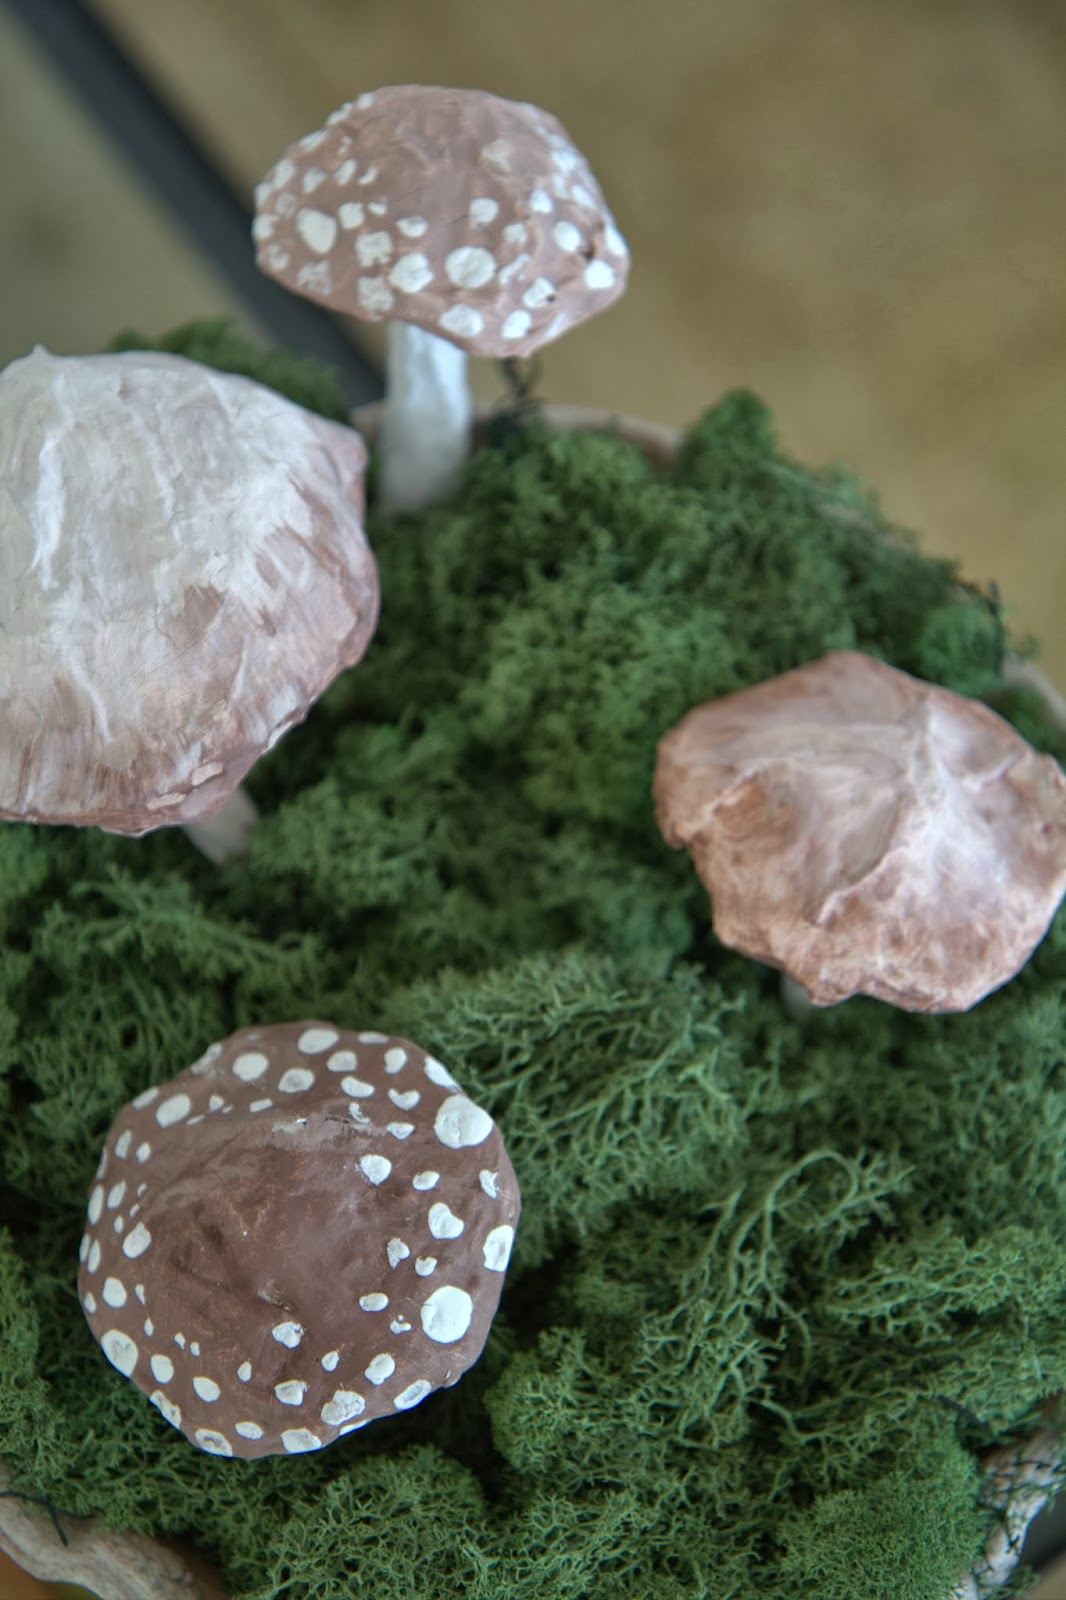 Paper Mache Mushrooms in Moss 5